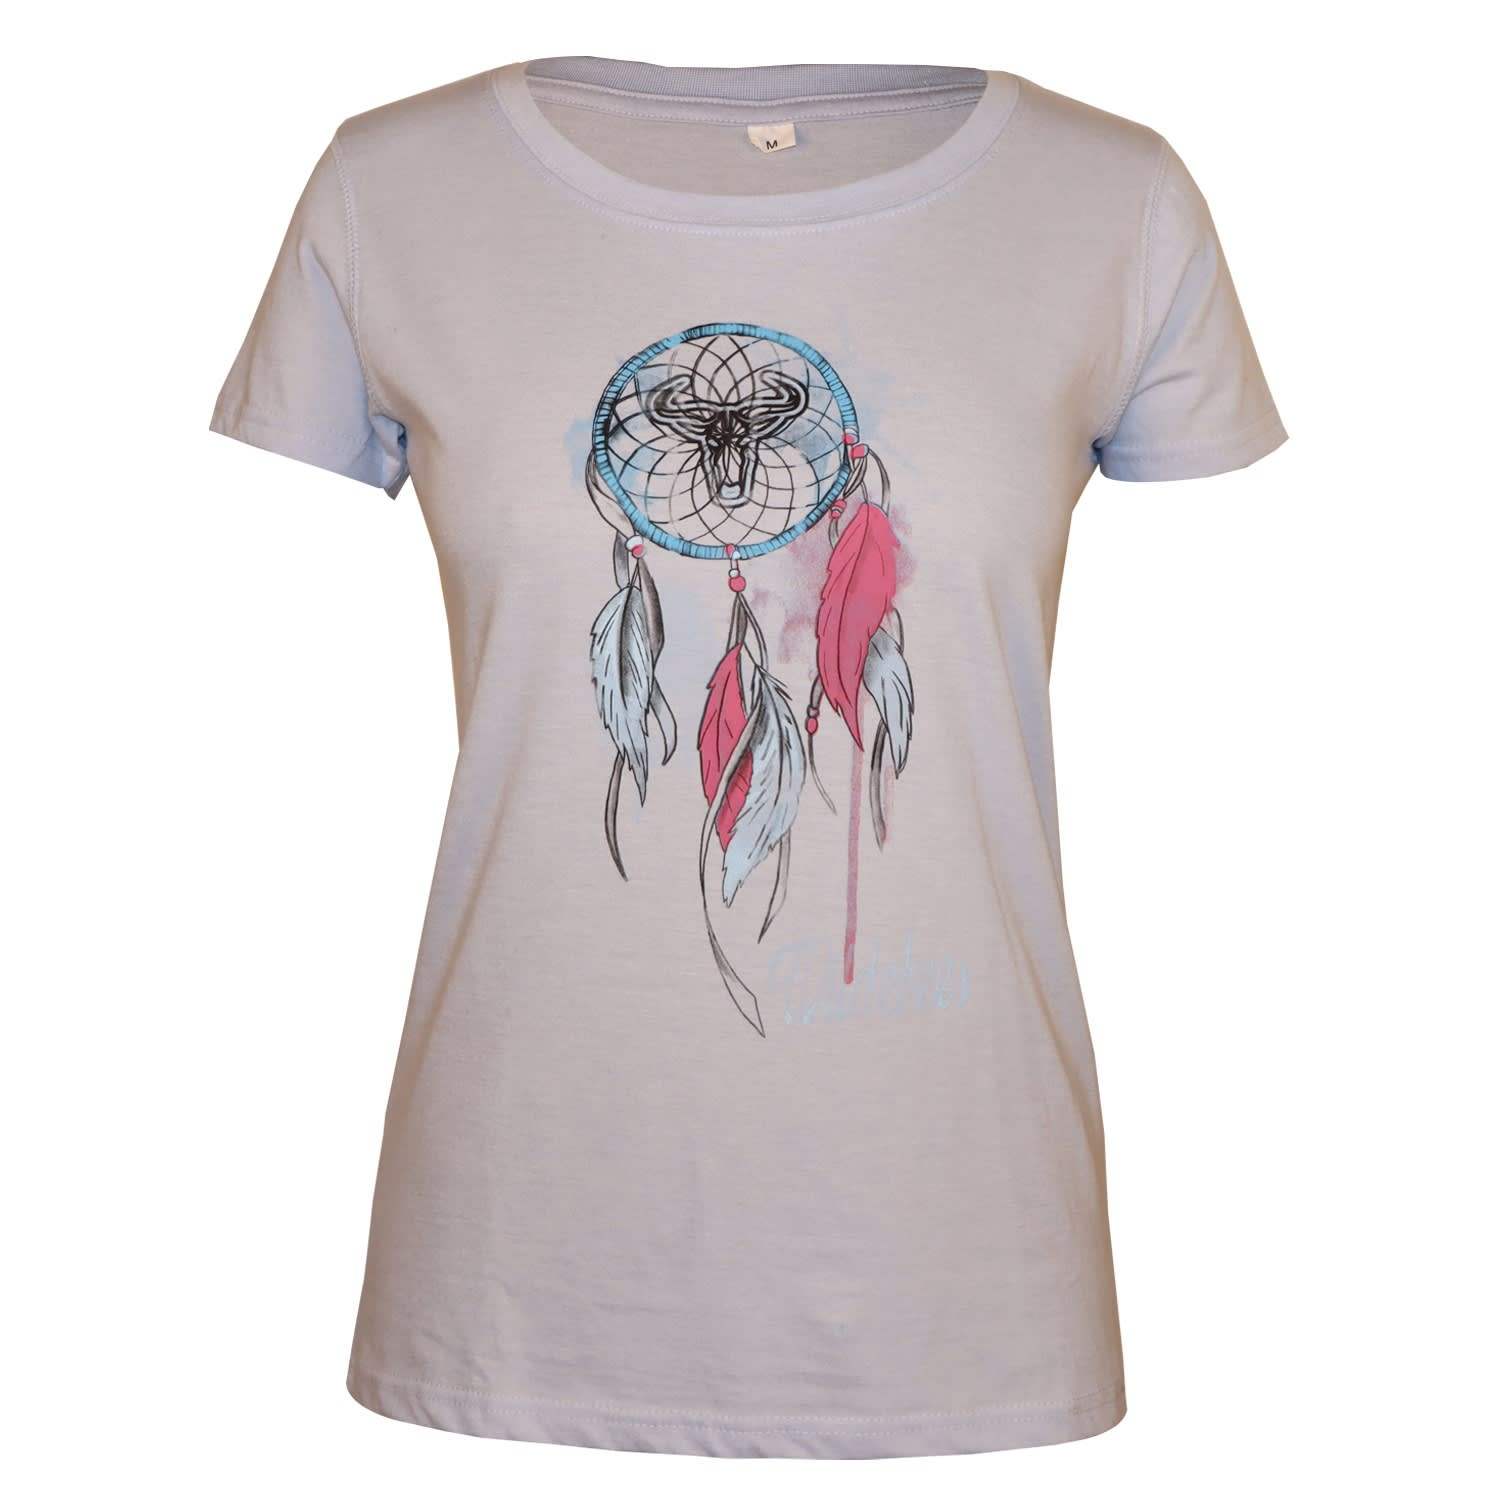 Wildebees Women's Dreamcatcher Tee